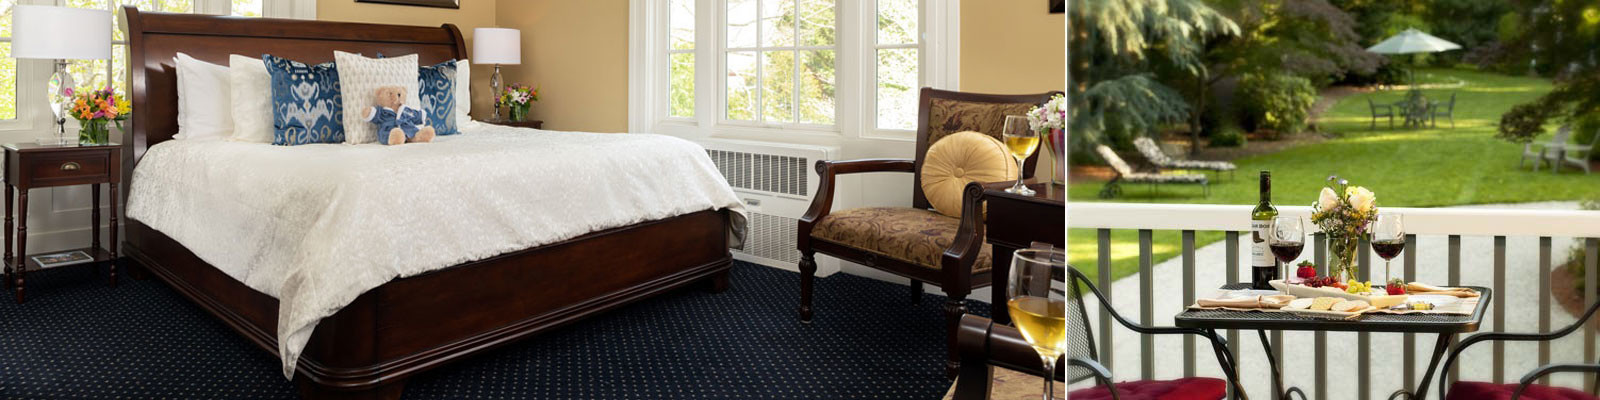 Cape Cod Bed & Breakfast: Guest Rooms - Captain's Manor Inn